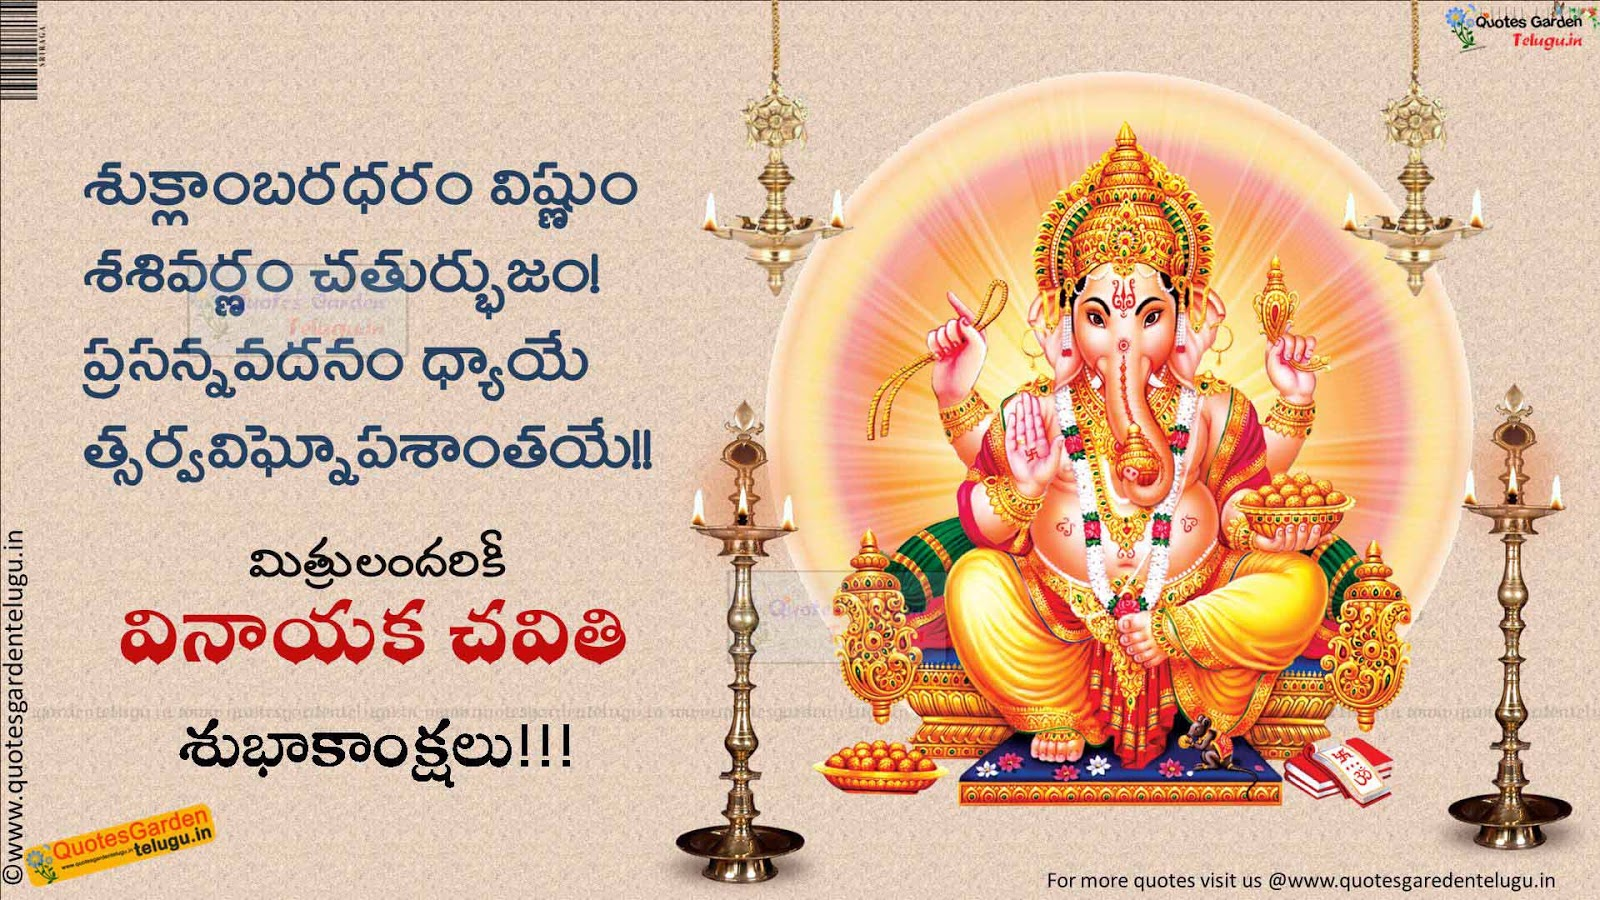 Vinayaka chaturthi poems wallpapers images in telugu quotes garden vinayaka chaturth poems wallpapers images in telugu m4hsunfo